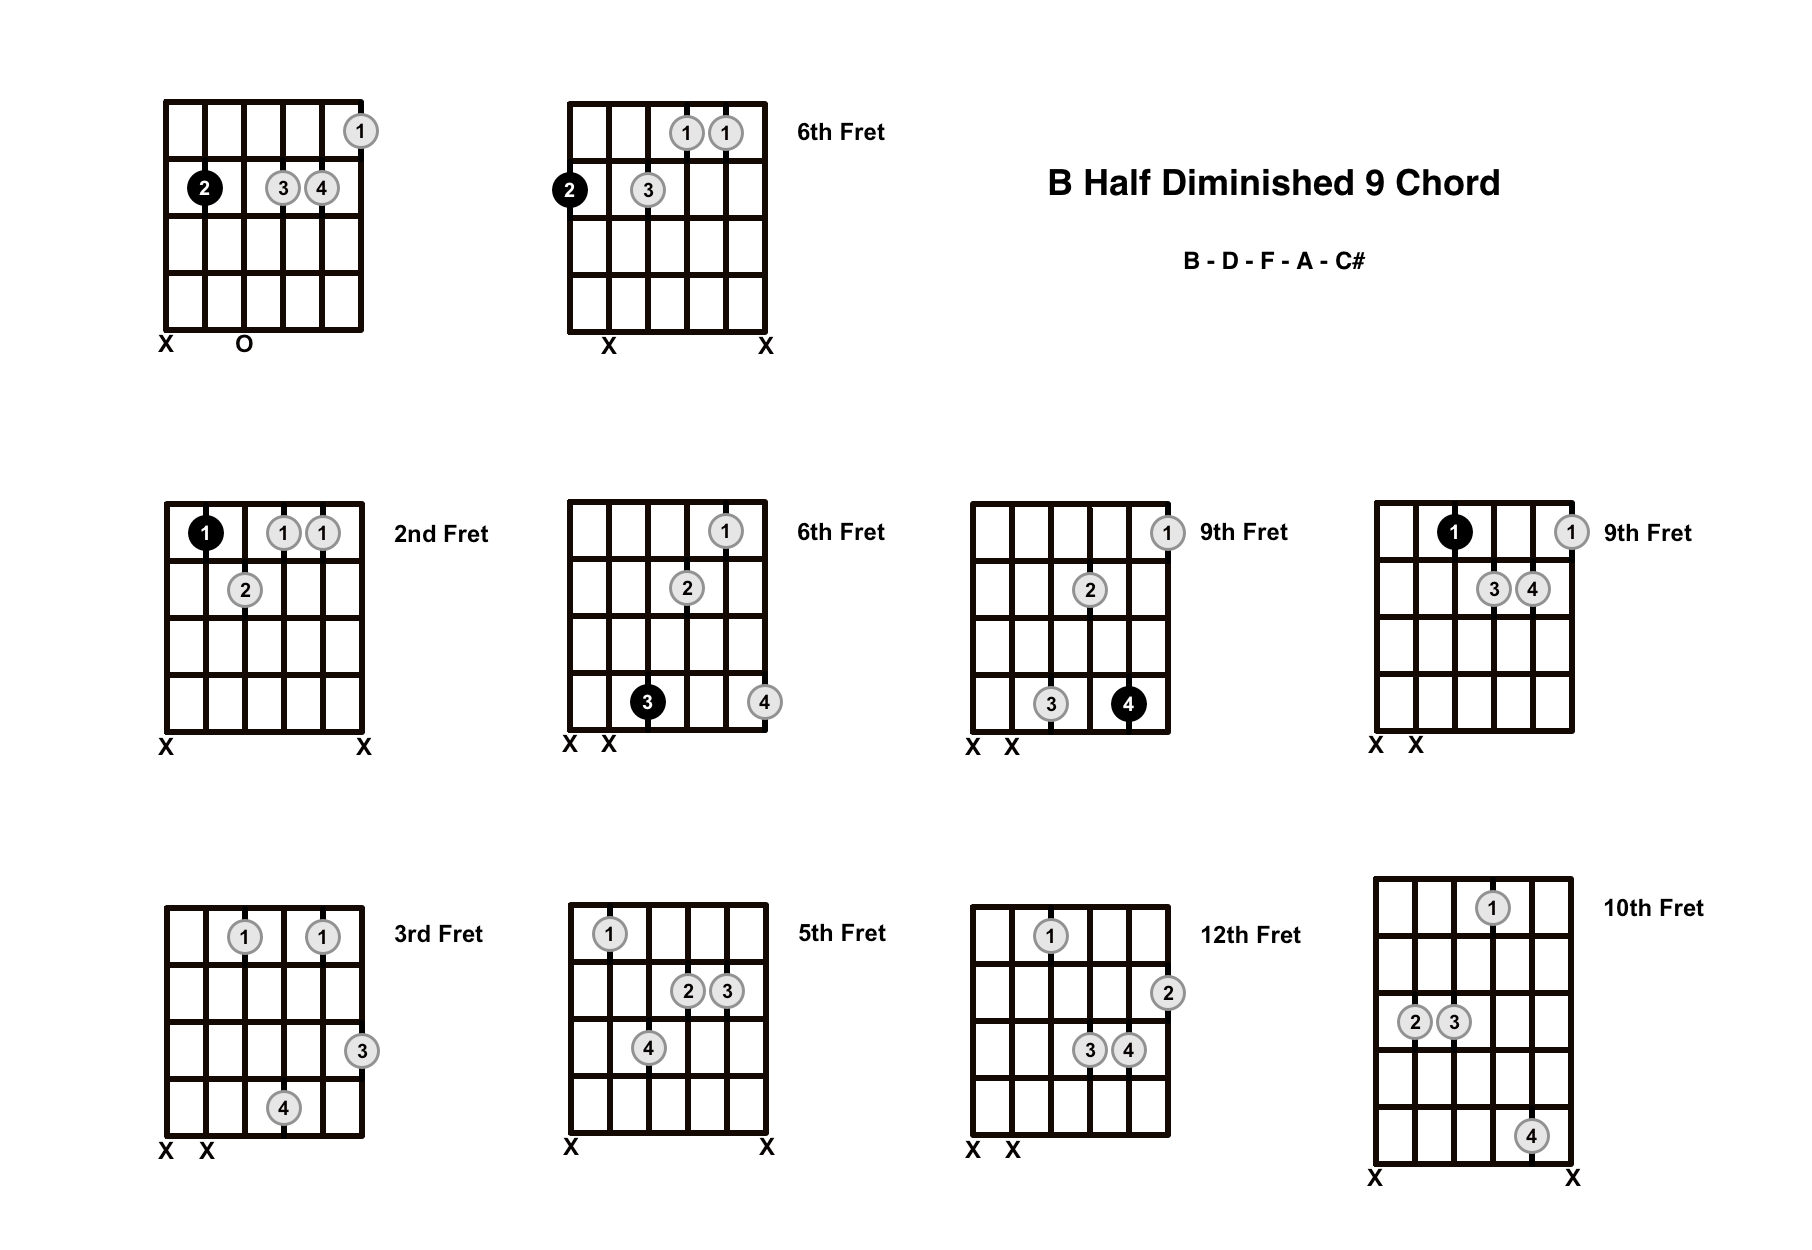 Bm9b5 Chord On The Guitar (B Half Diminished 9) – Diagrams, Finger Positions and Theory